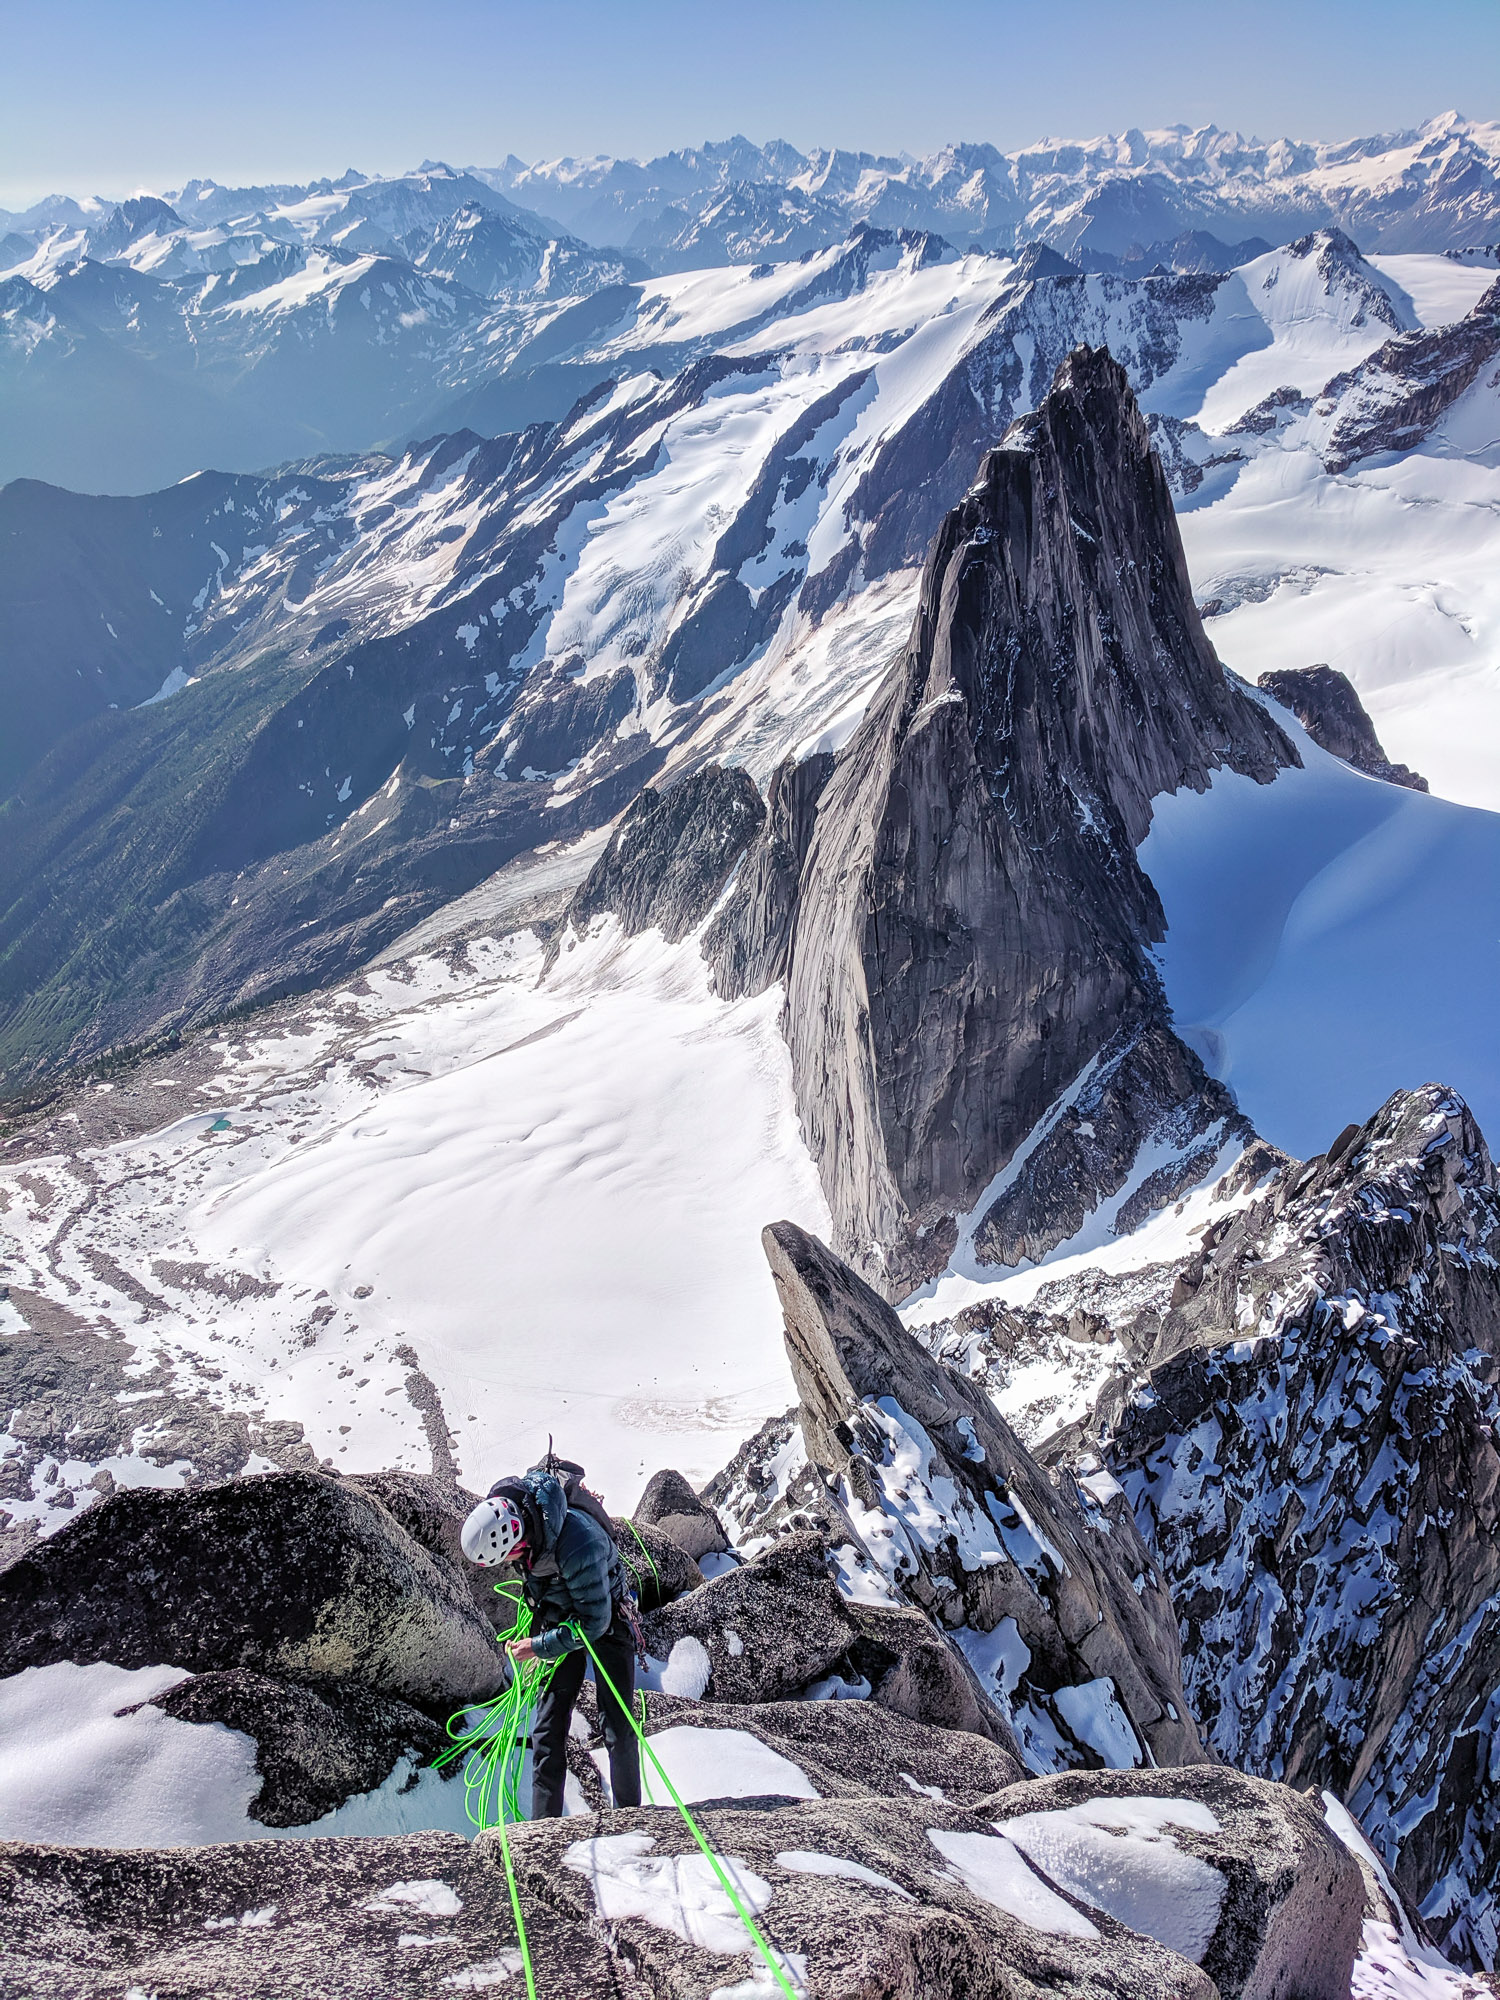 Me rappelling from the summit of Bugaboo Spire